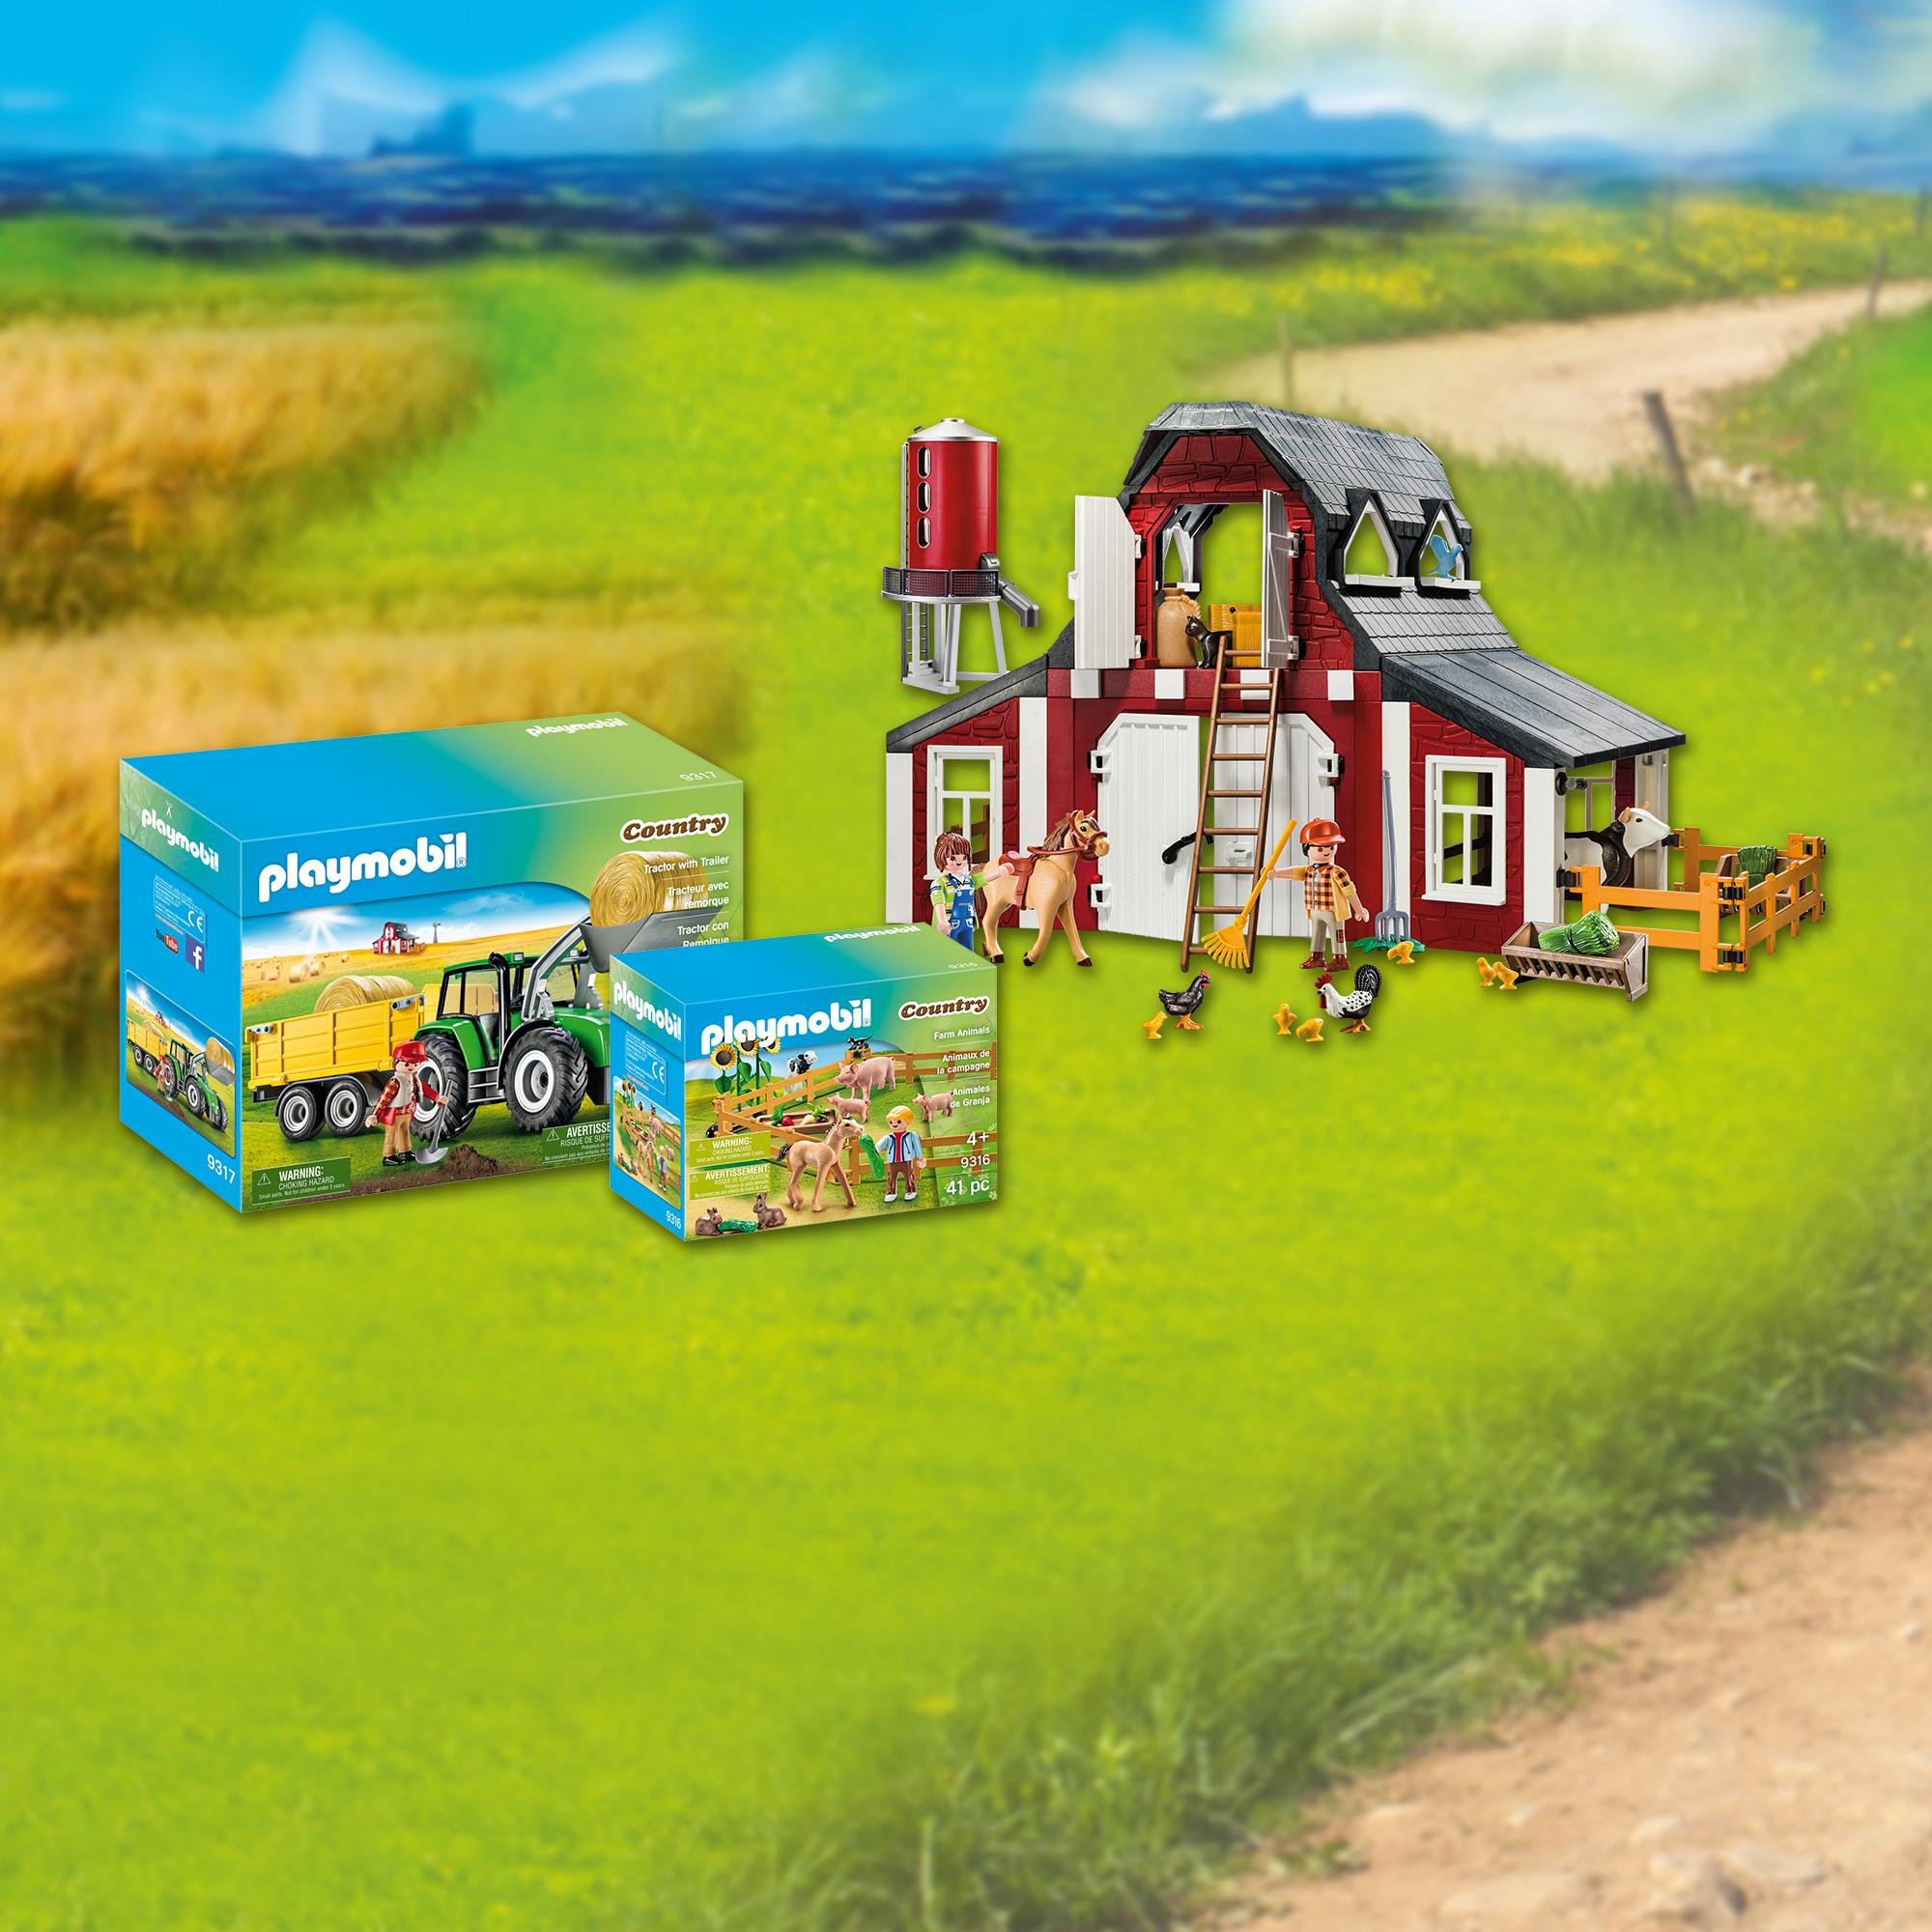 SHOP_COUNTRY_FARM_2018_US_3X2